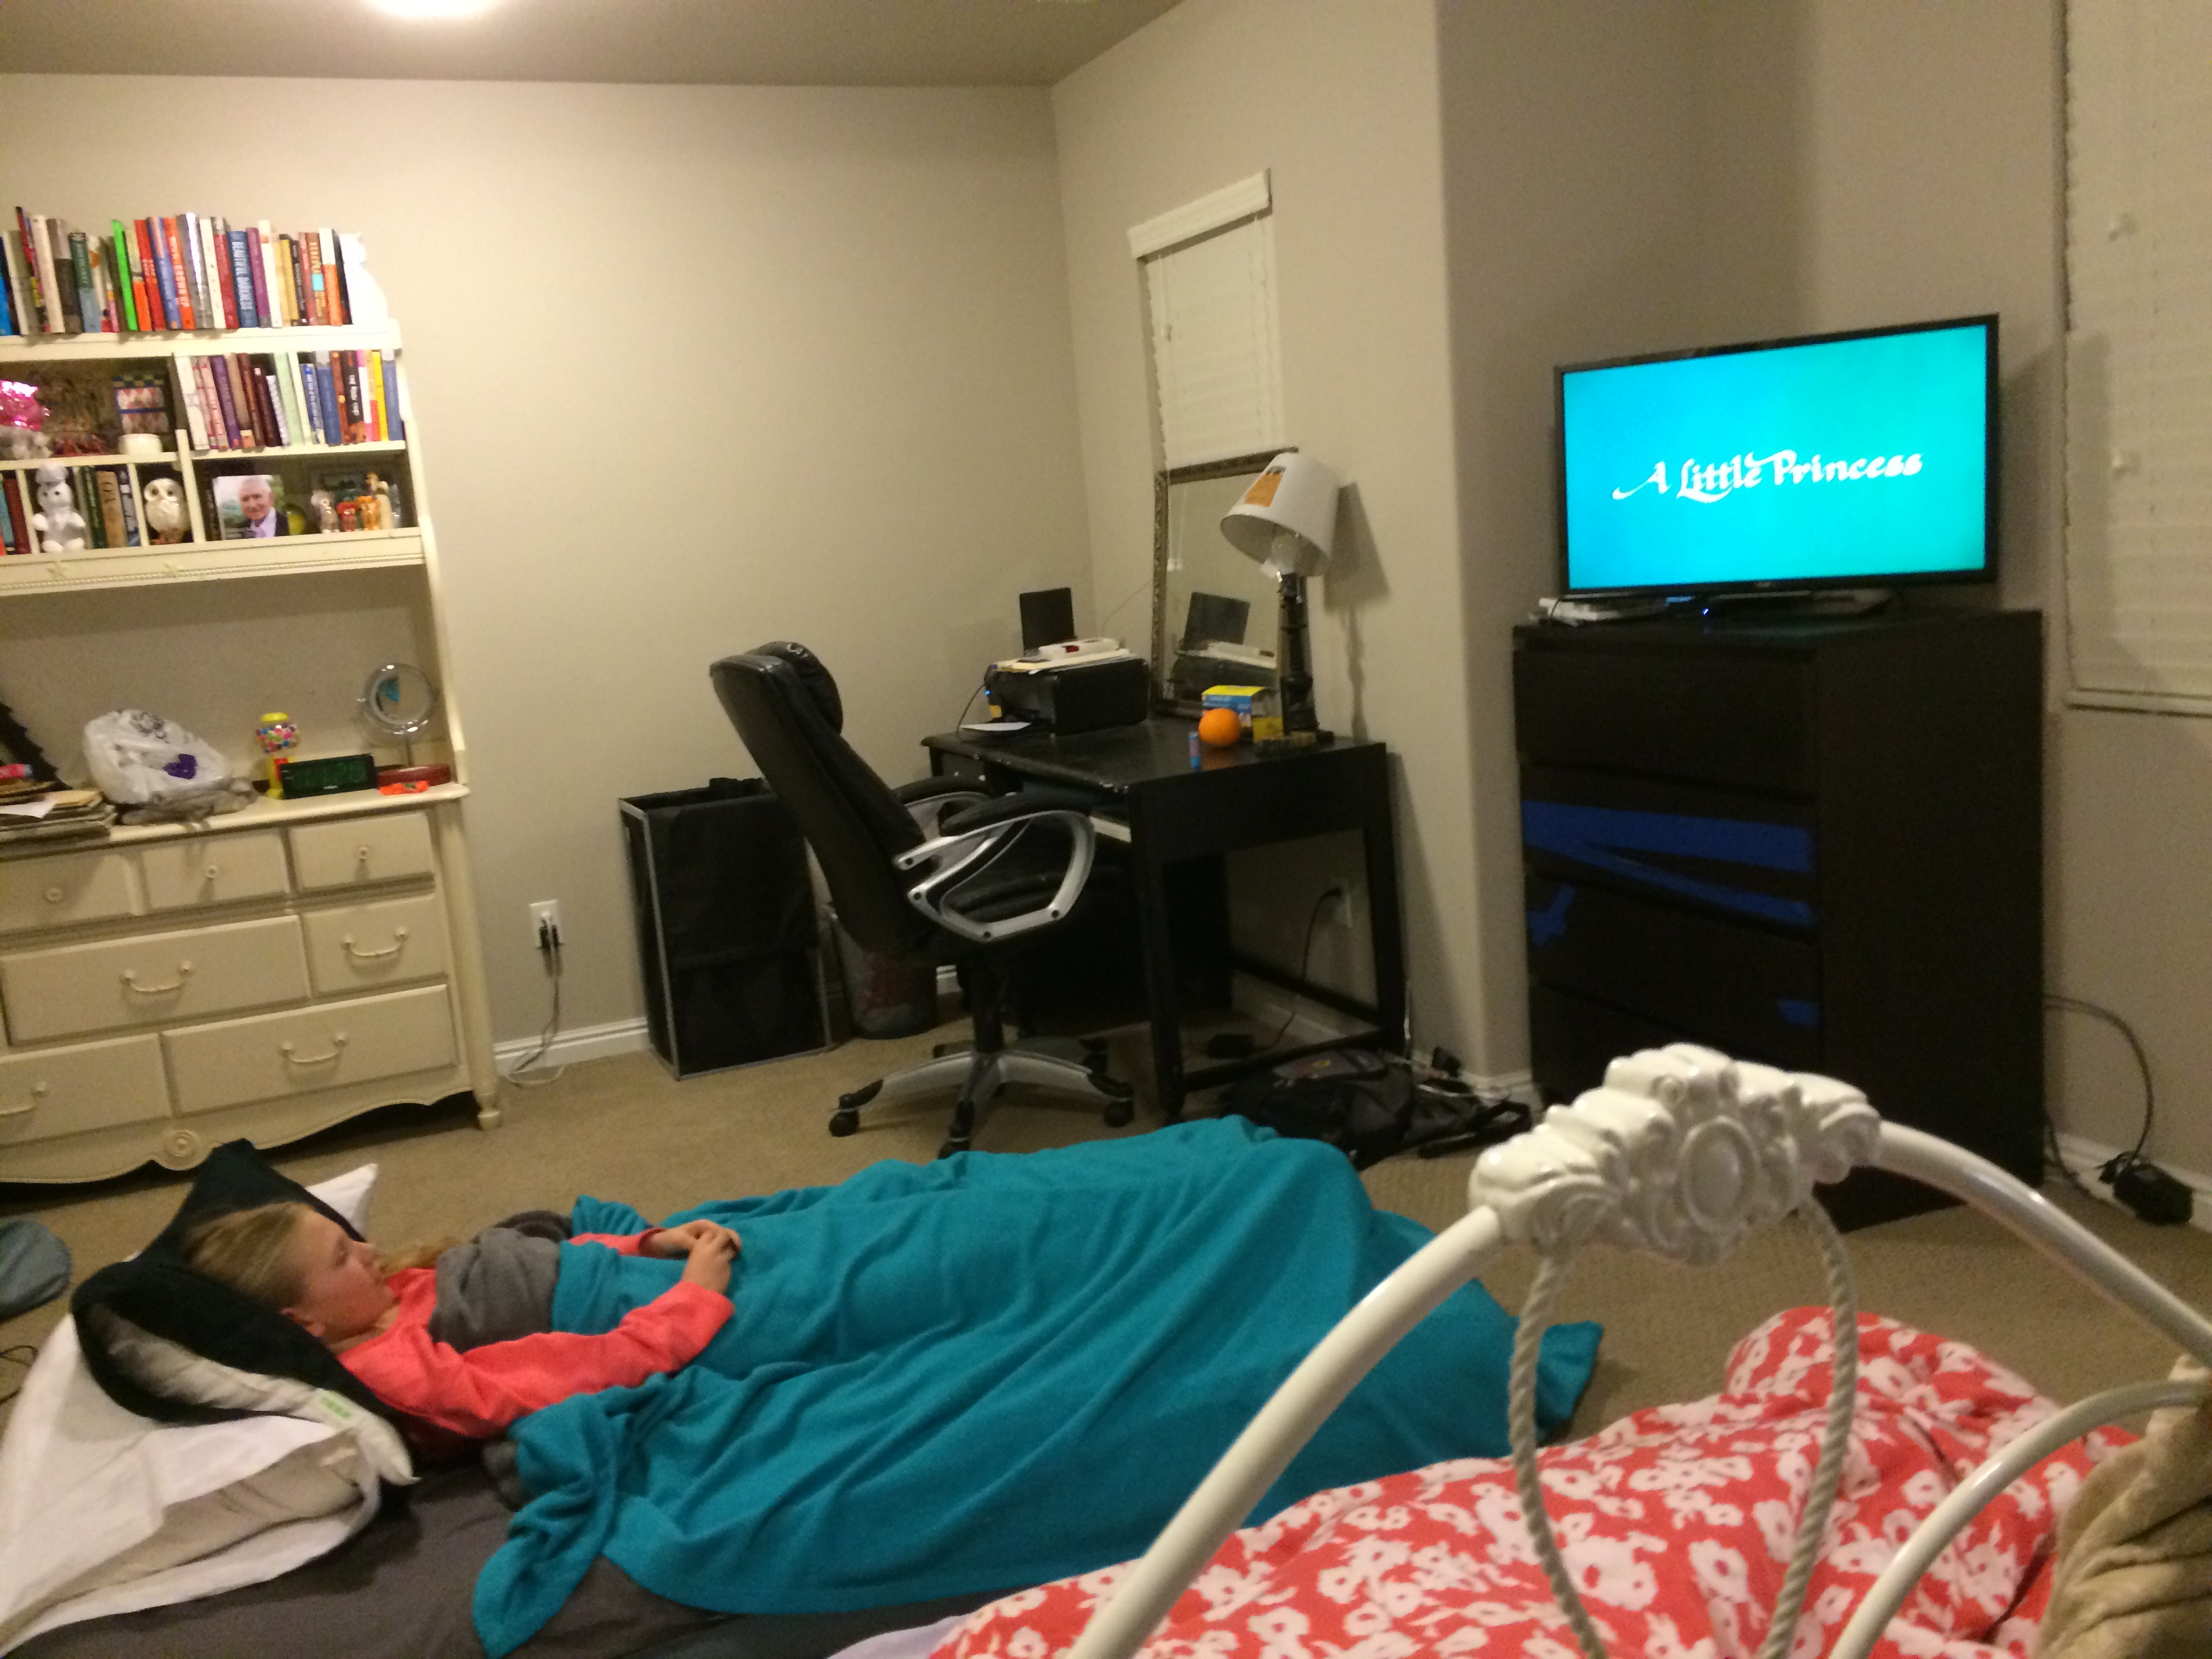 Sleepover with Em & Noelle - Jan 1, 2015 411